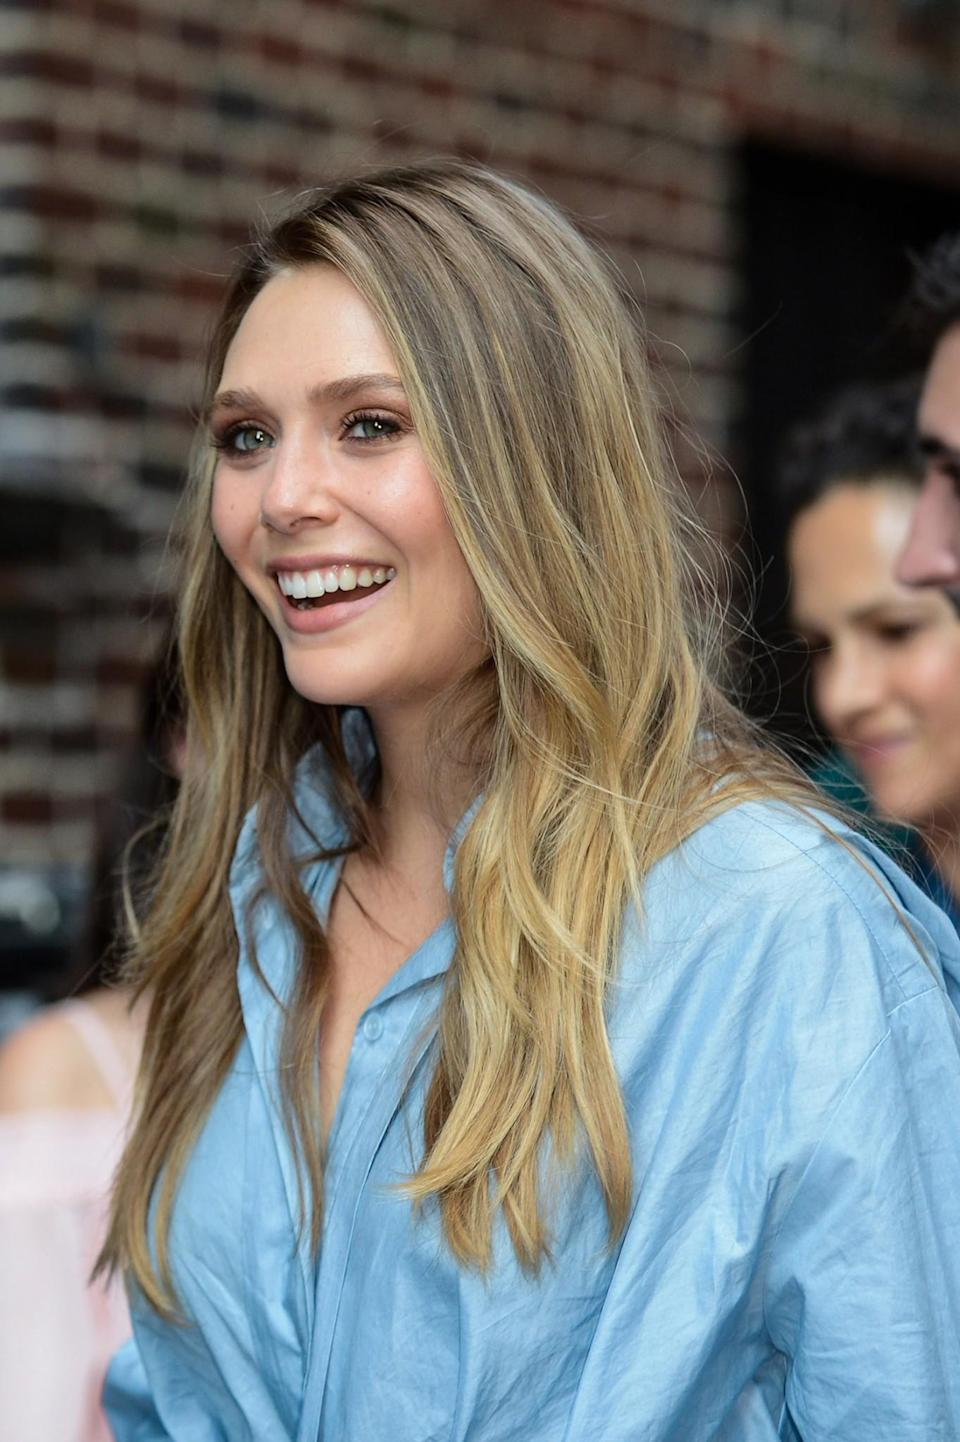 <p>Olsen made an appearance on <em>The Late Show With Stephen Colber</em> wearing beachy, blond waves and tawny eyeshadow that made her blue eyes pop. (Photo: Getty Images) </p>